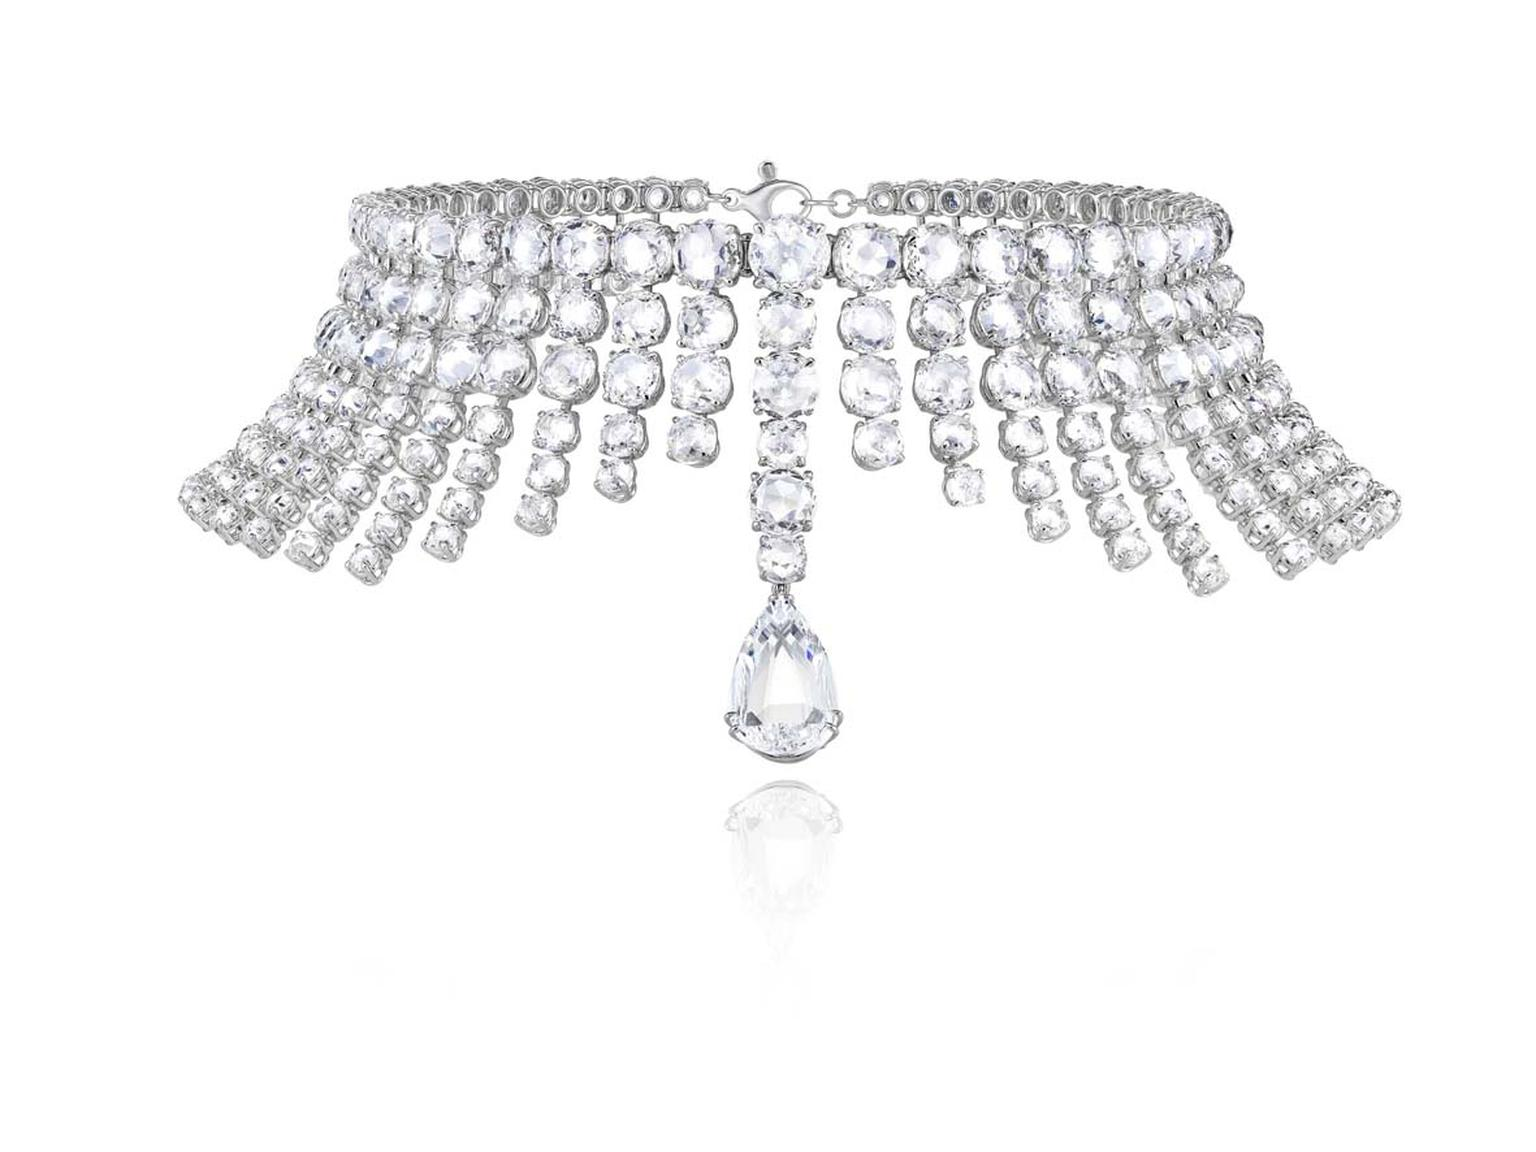 810391-1001 Diamond Necklace from the Red Carpet Collection 2013ChopardChopard.jpg